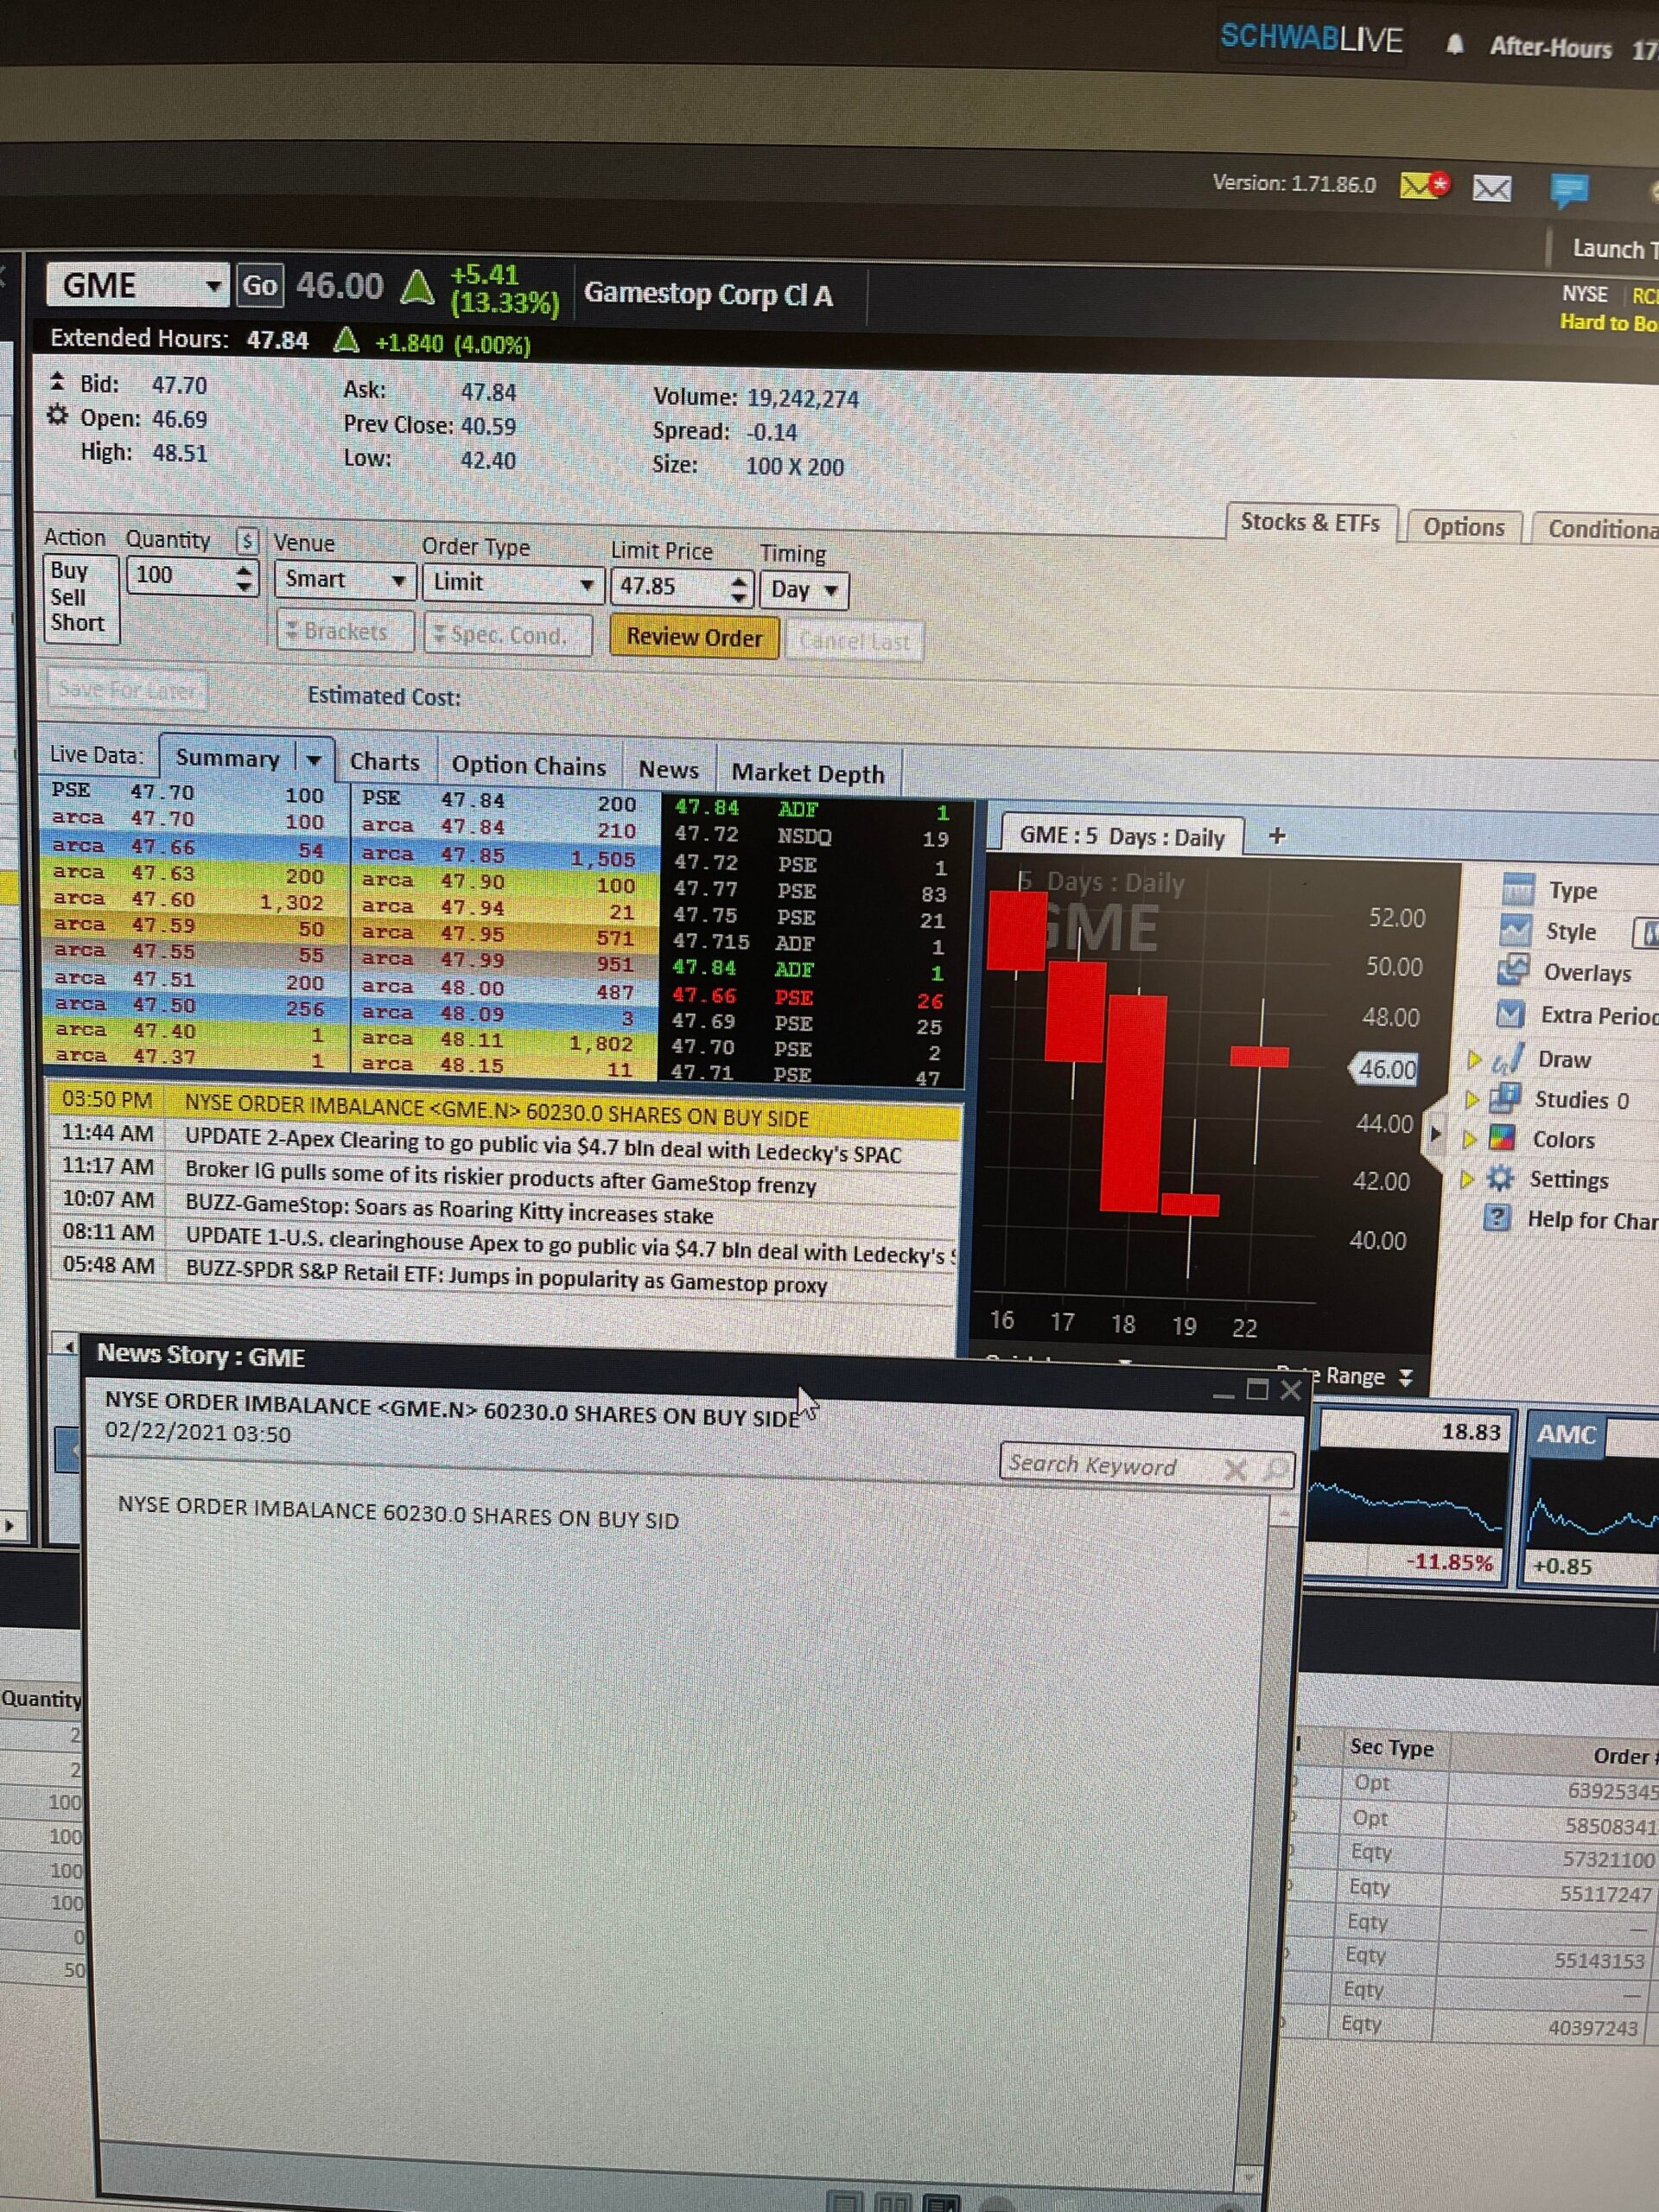 NYSE GME correction of 60230 shares on the Buy Side. This is what's pushing the price up after hours.